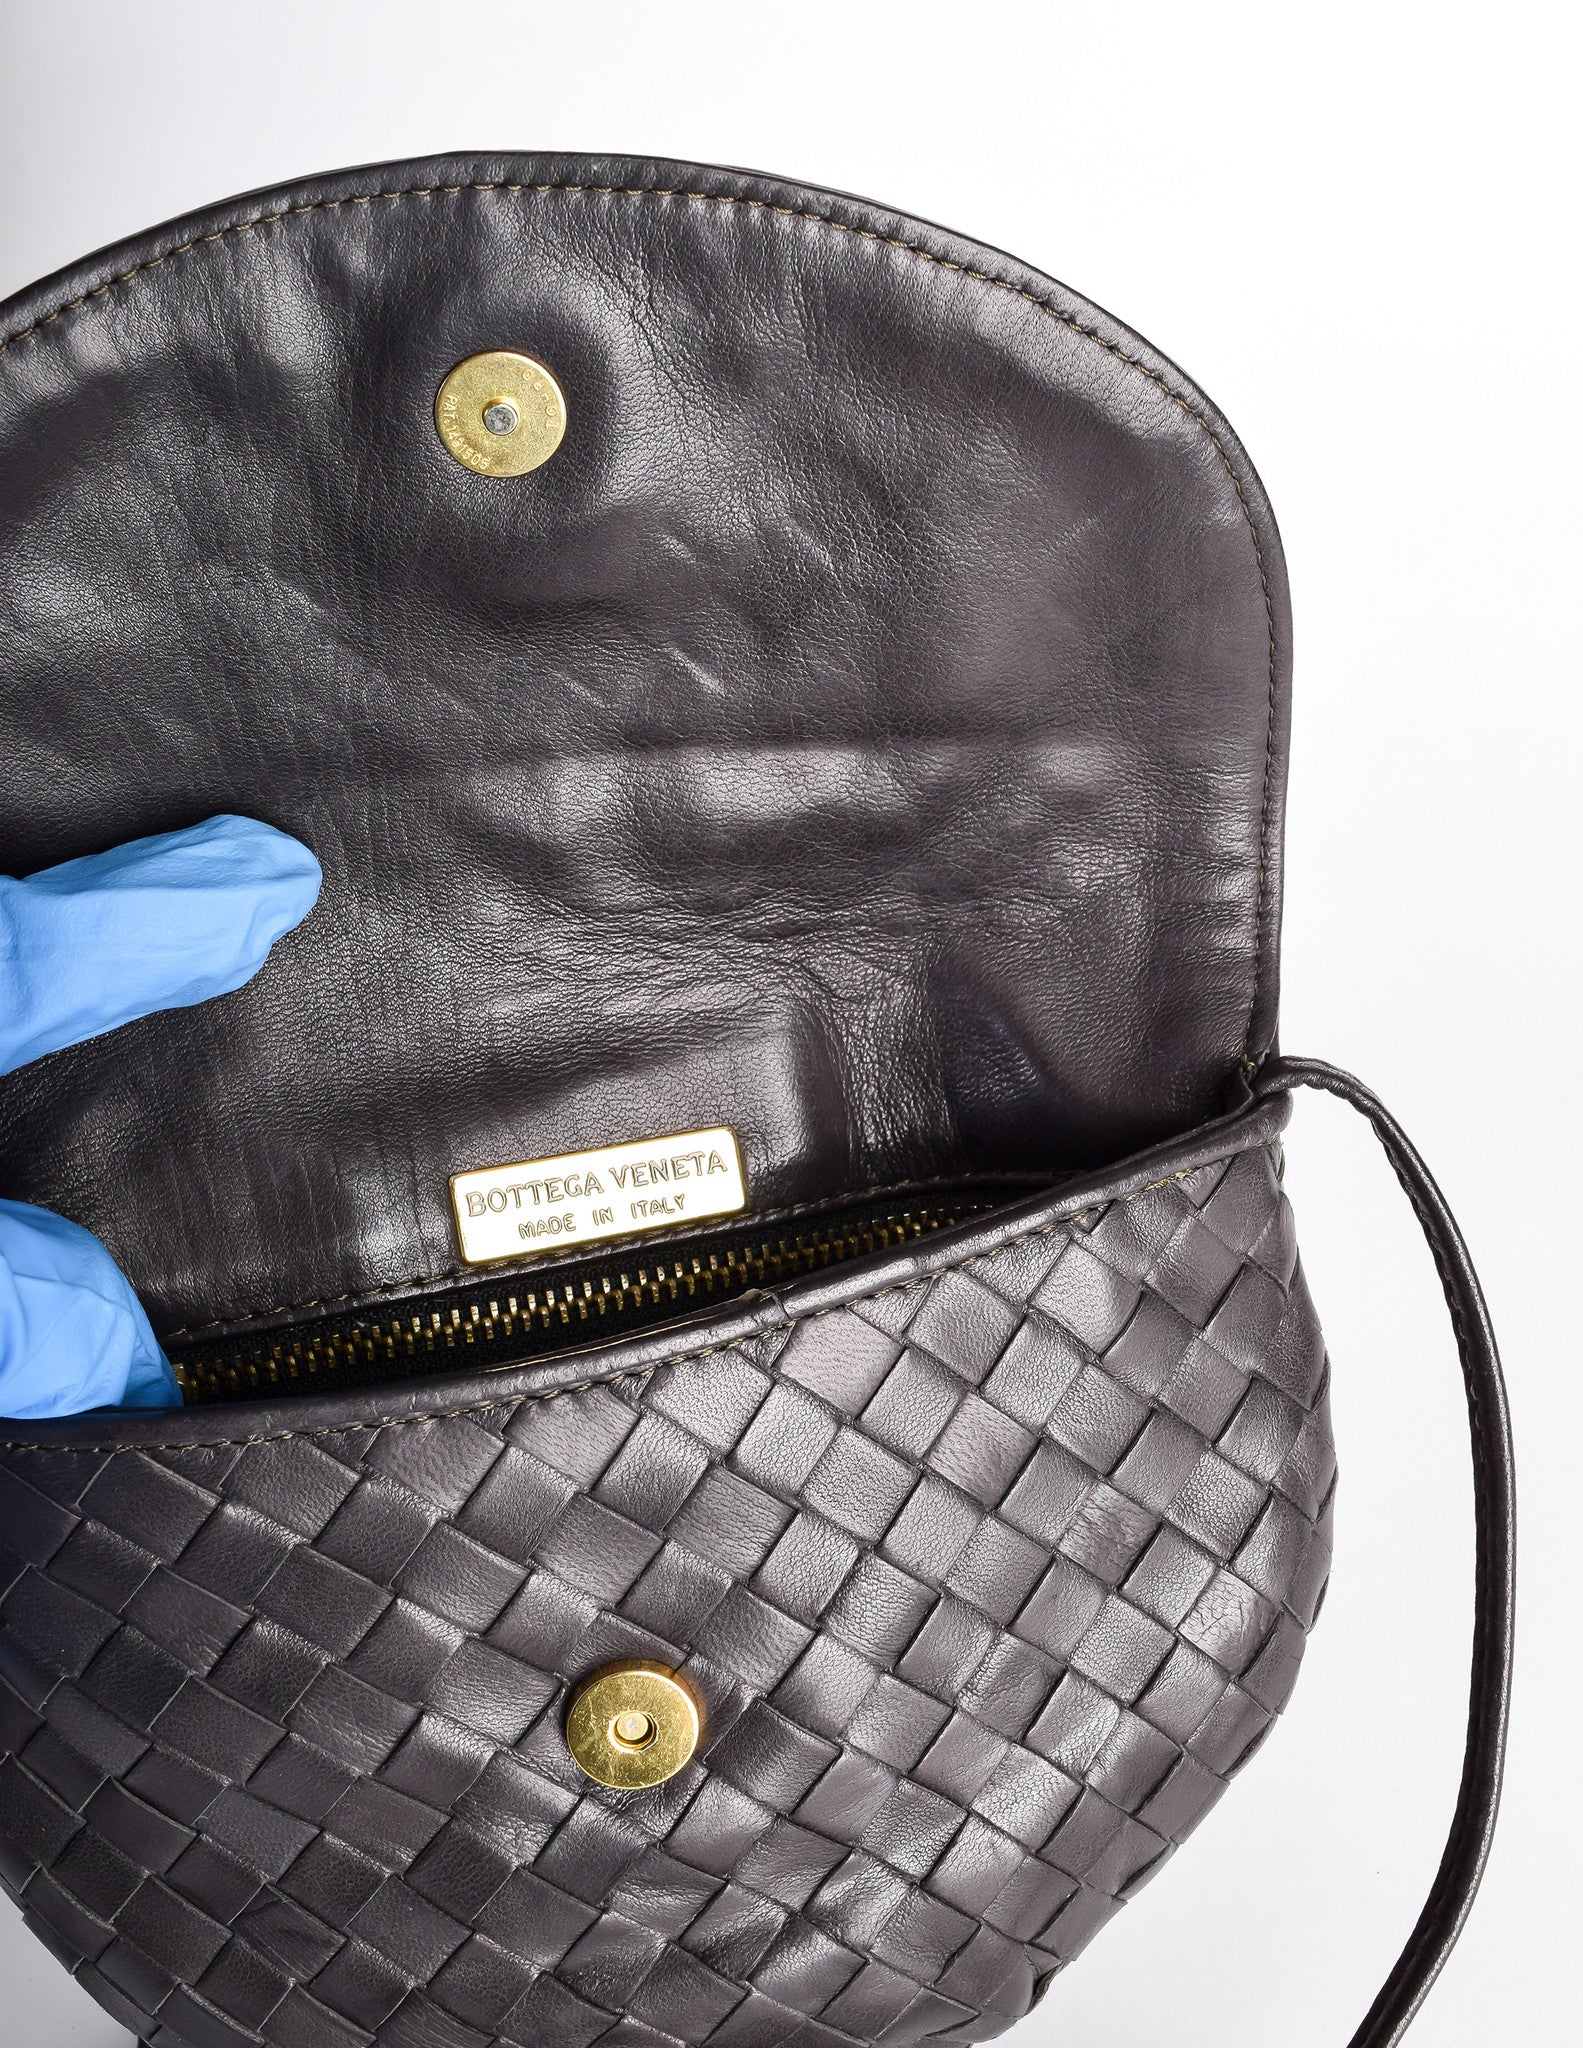 Bottega Veneta Vintage Intrecciato Black Woven Leather Crossbody Bag -  Amarcord Vintage Fashion - 8 684d8c400106d